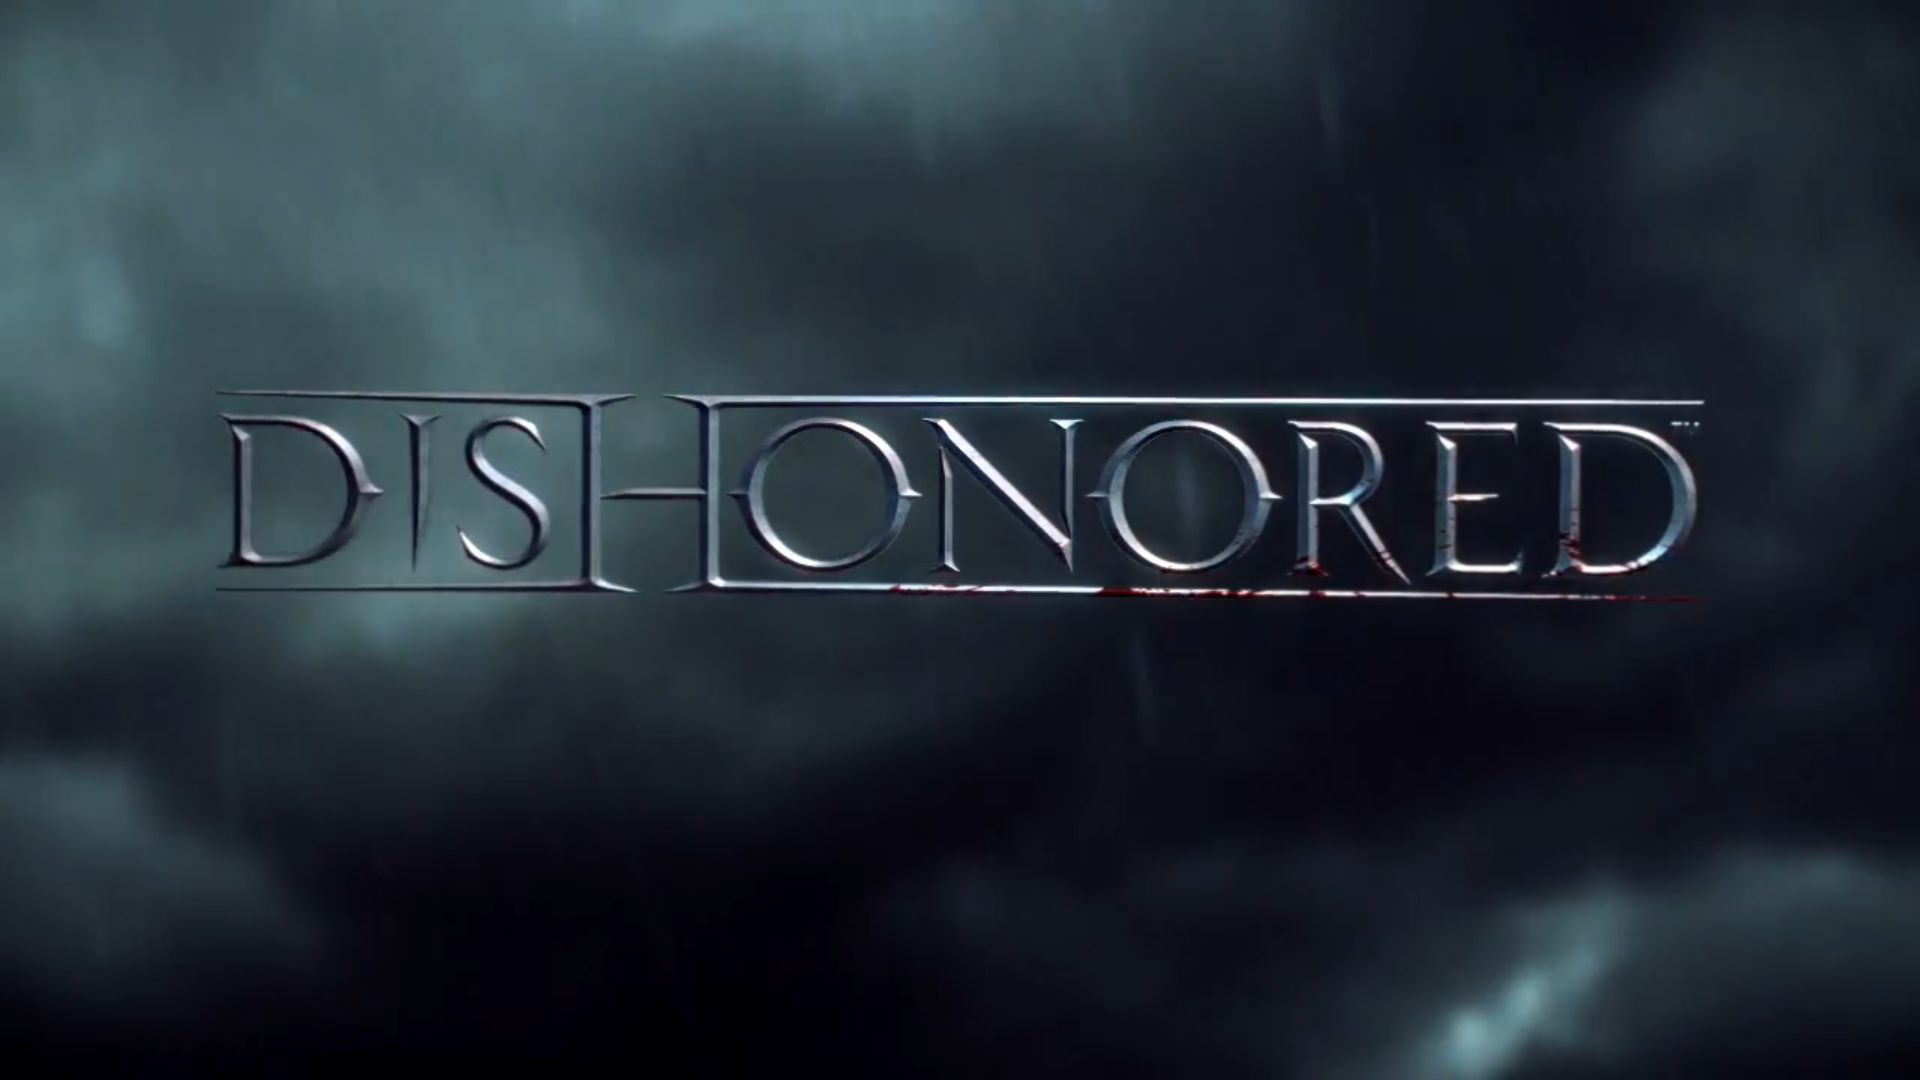 Dishonored: Gameplay Trailer